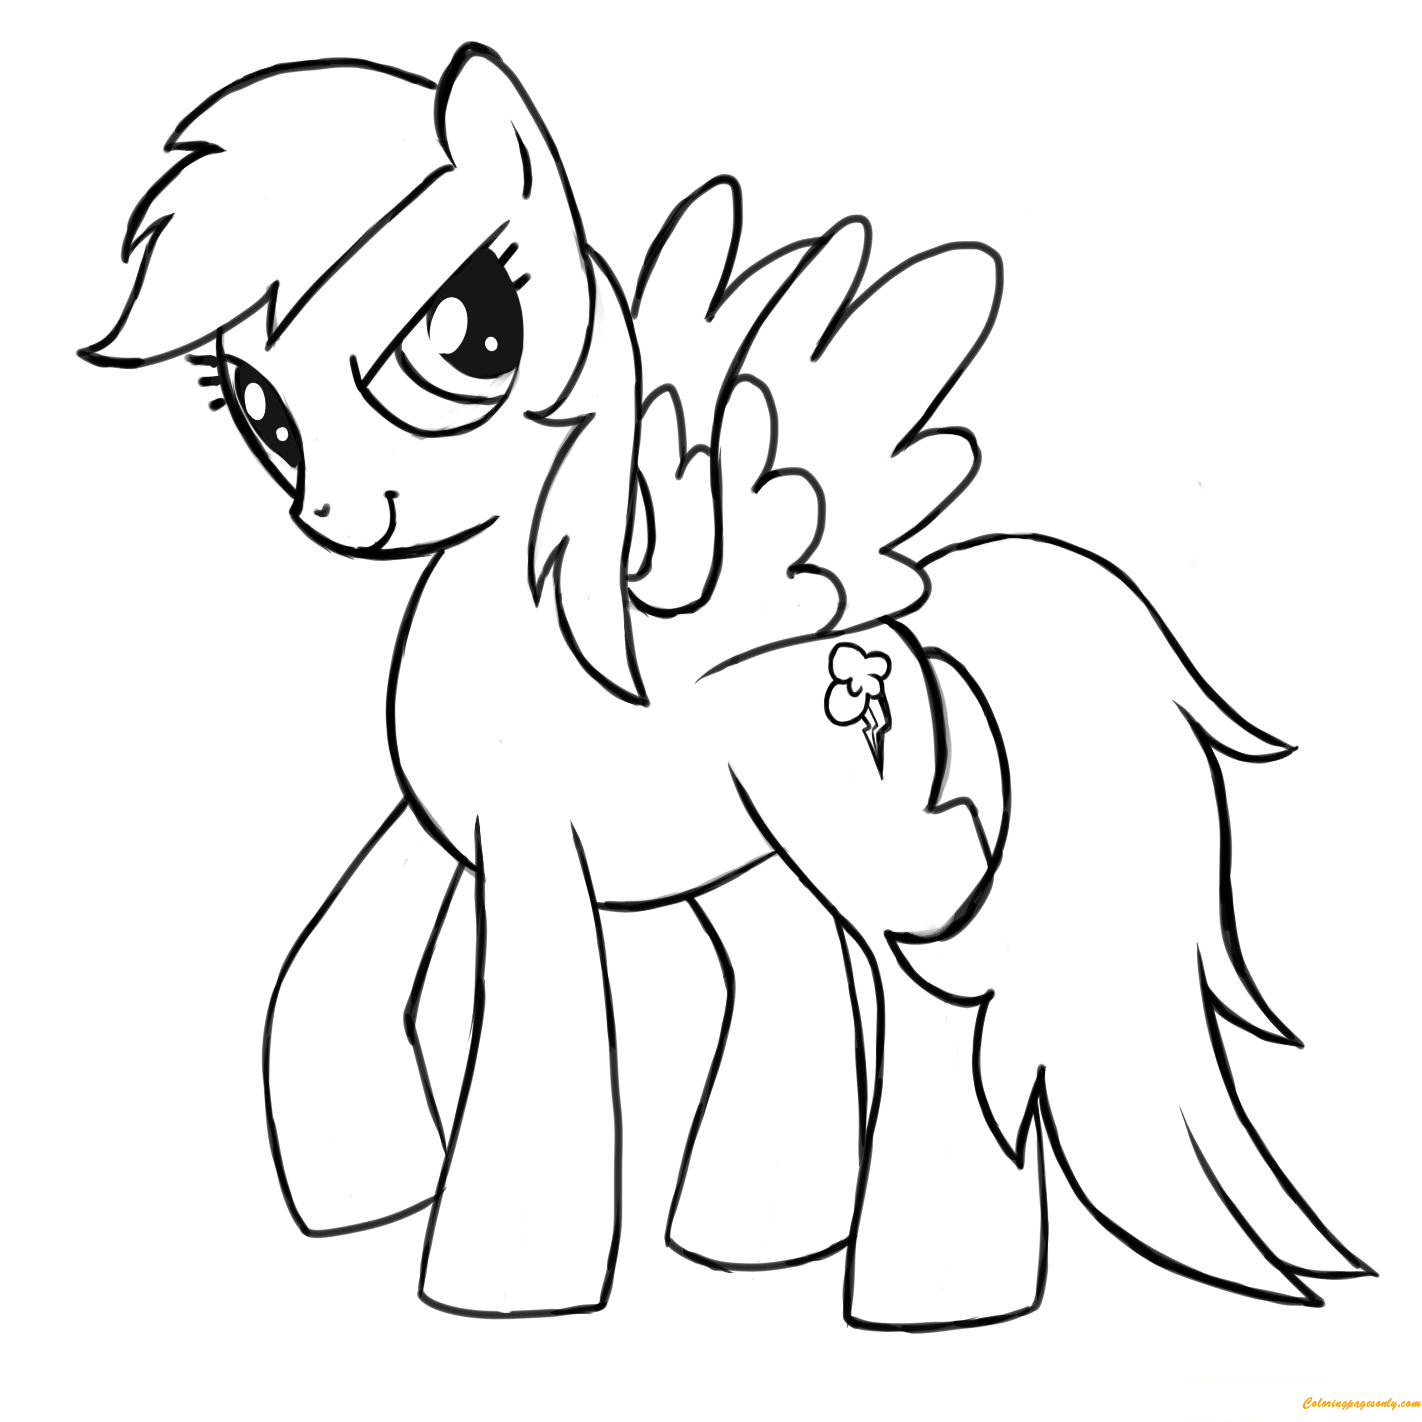 rainbow dash pictures to color magic rainbow dash coloring page free coloring pages online rainbow dash pictures color to